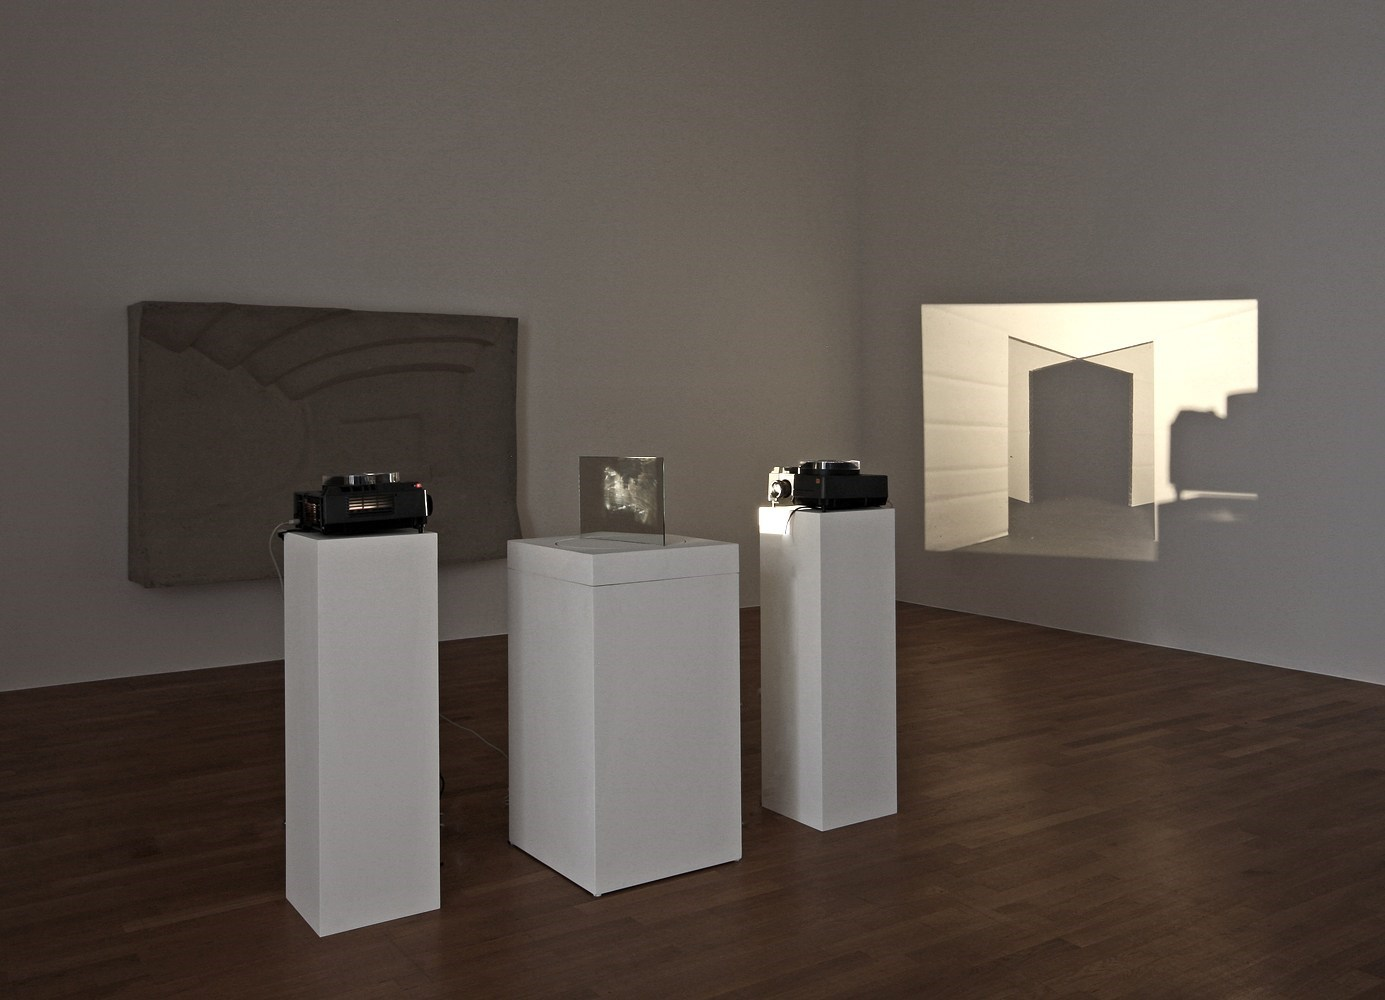 Untitled, slide projection, revolving mirror, 2010 <br />Installation view Kunstmuseum Bonn